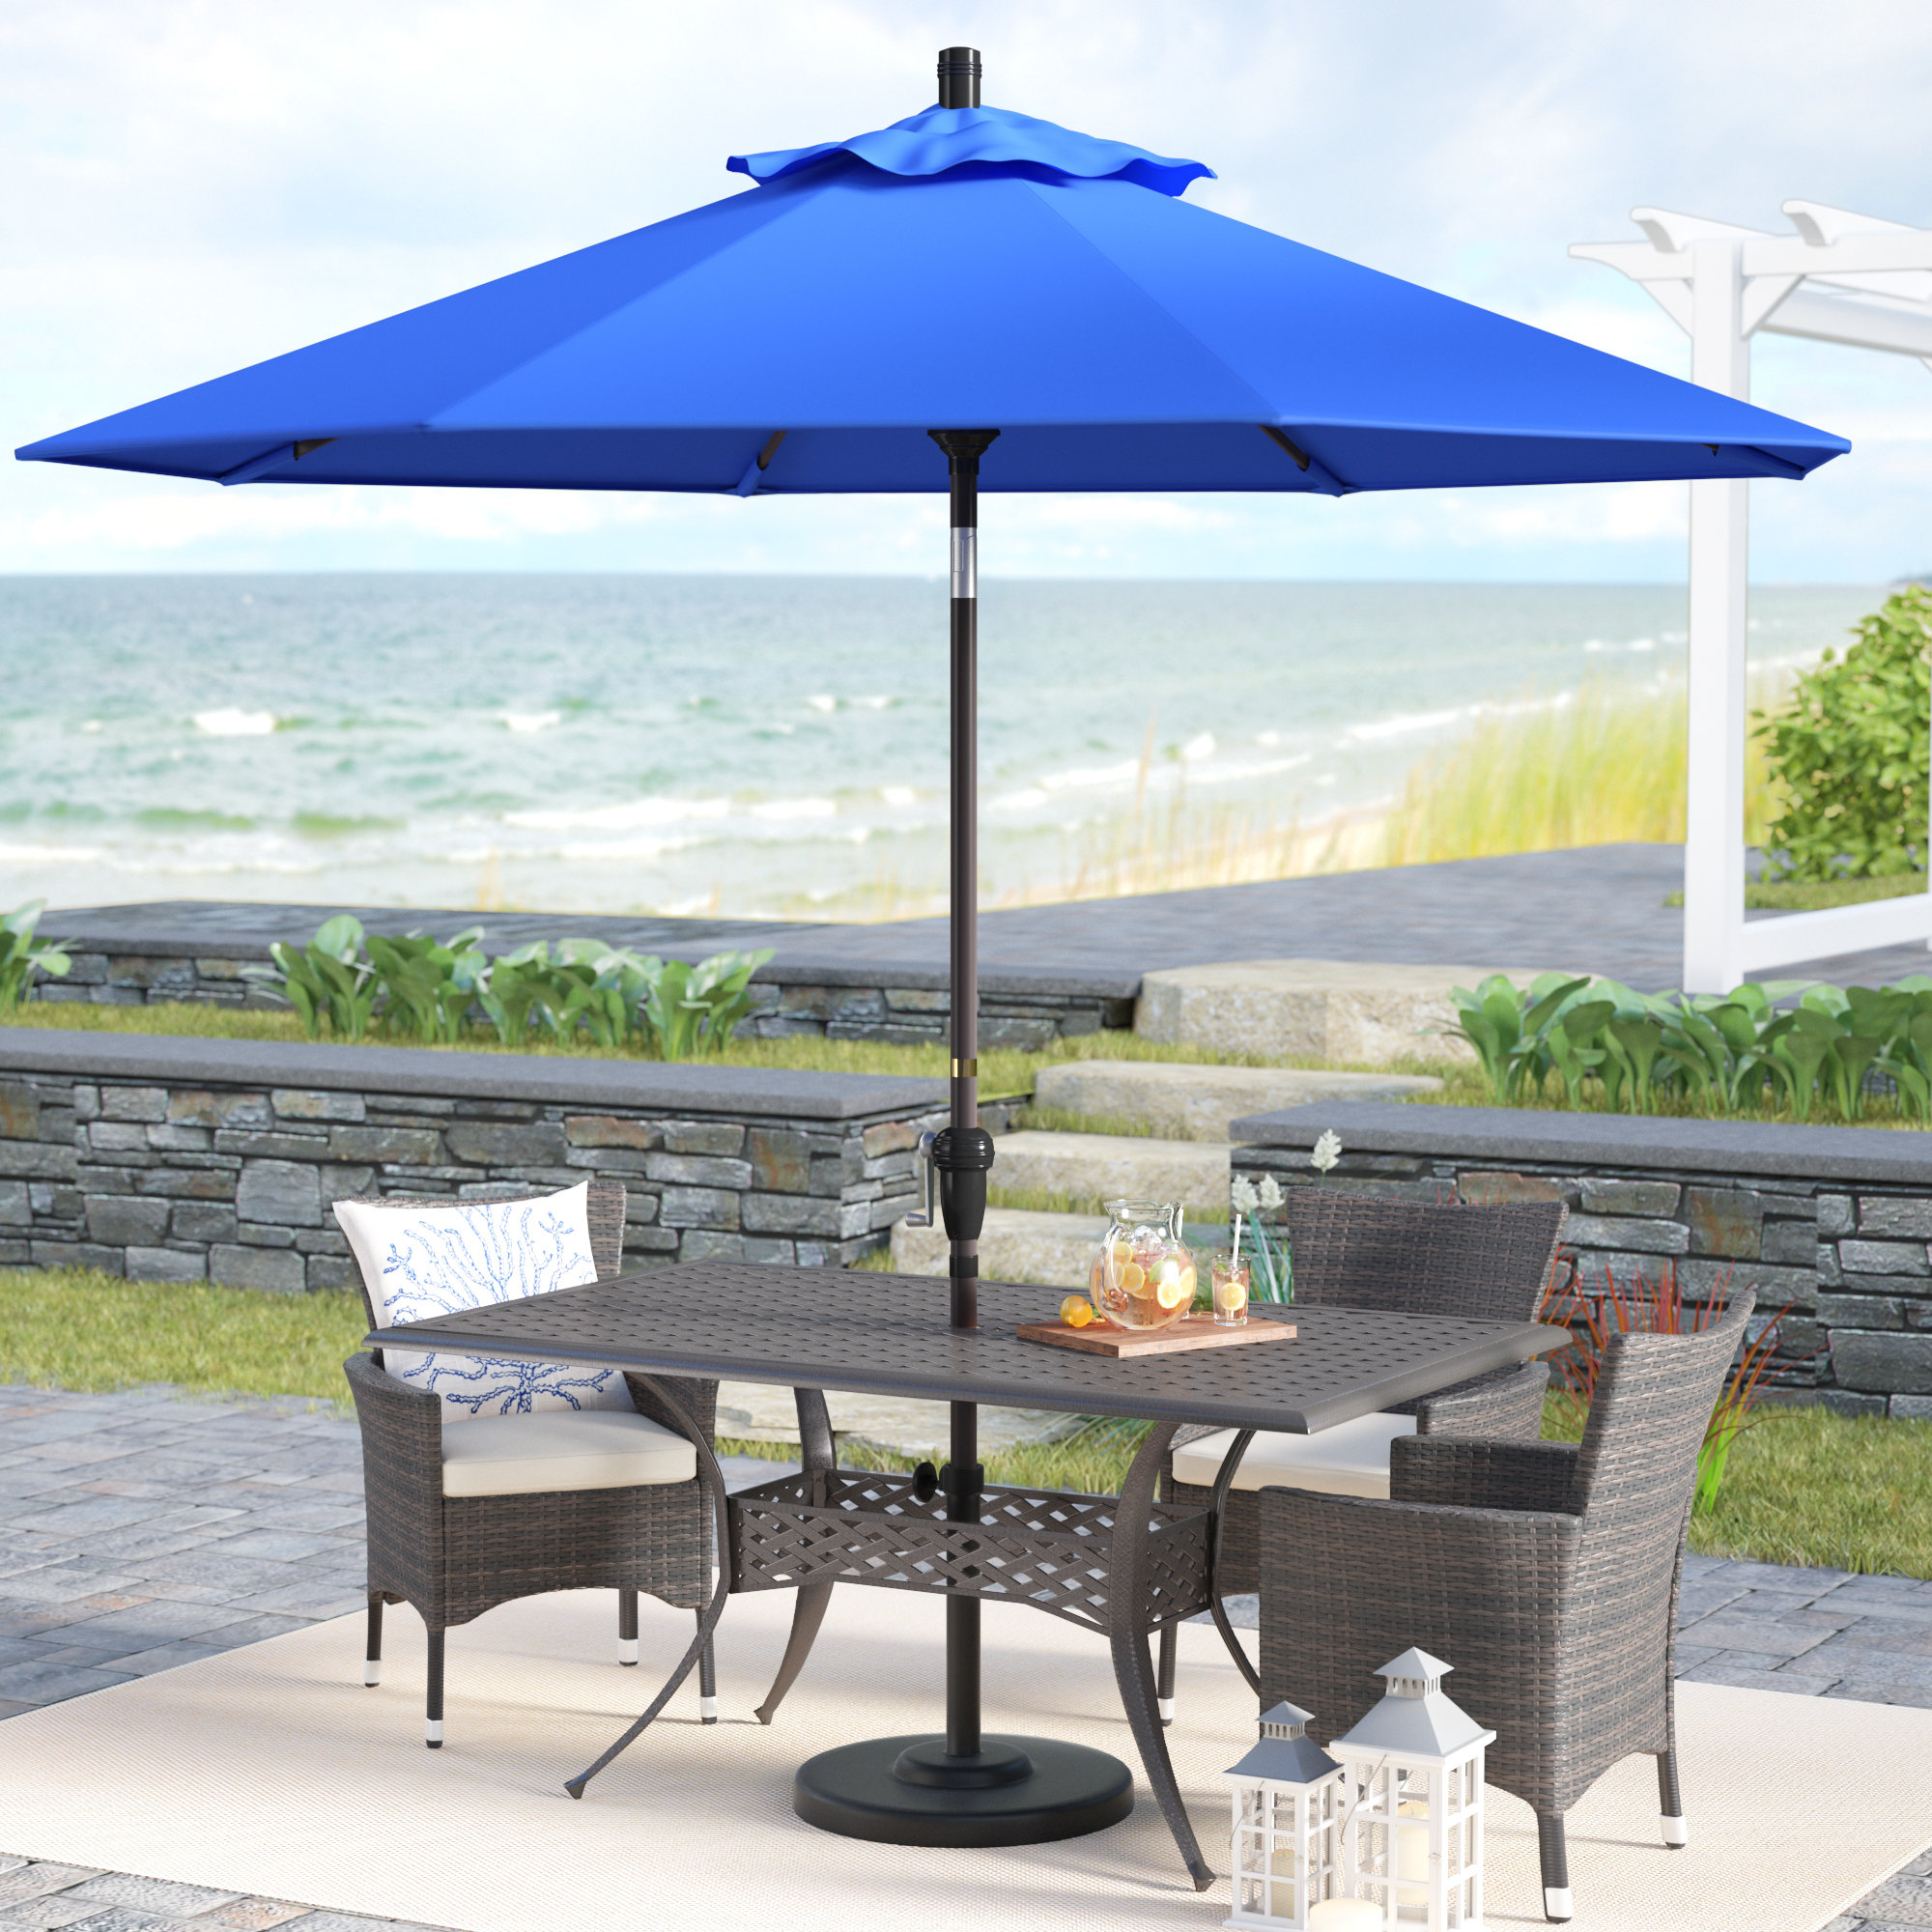 Preferred Mullaney 9' Market Sunbrella Umbrella With Wiebe Market Sunbrella Umbrellas (View 12 of 20)